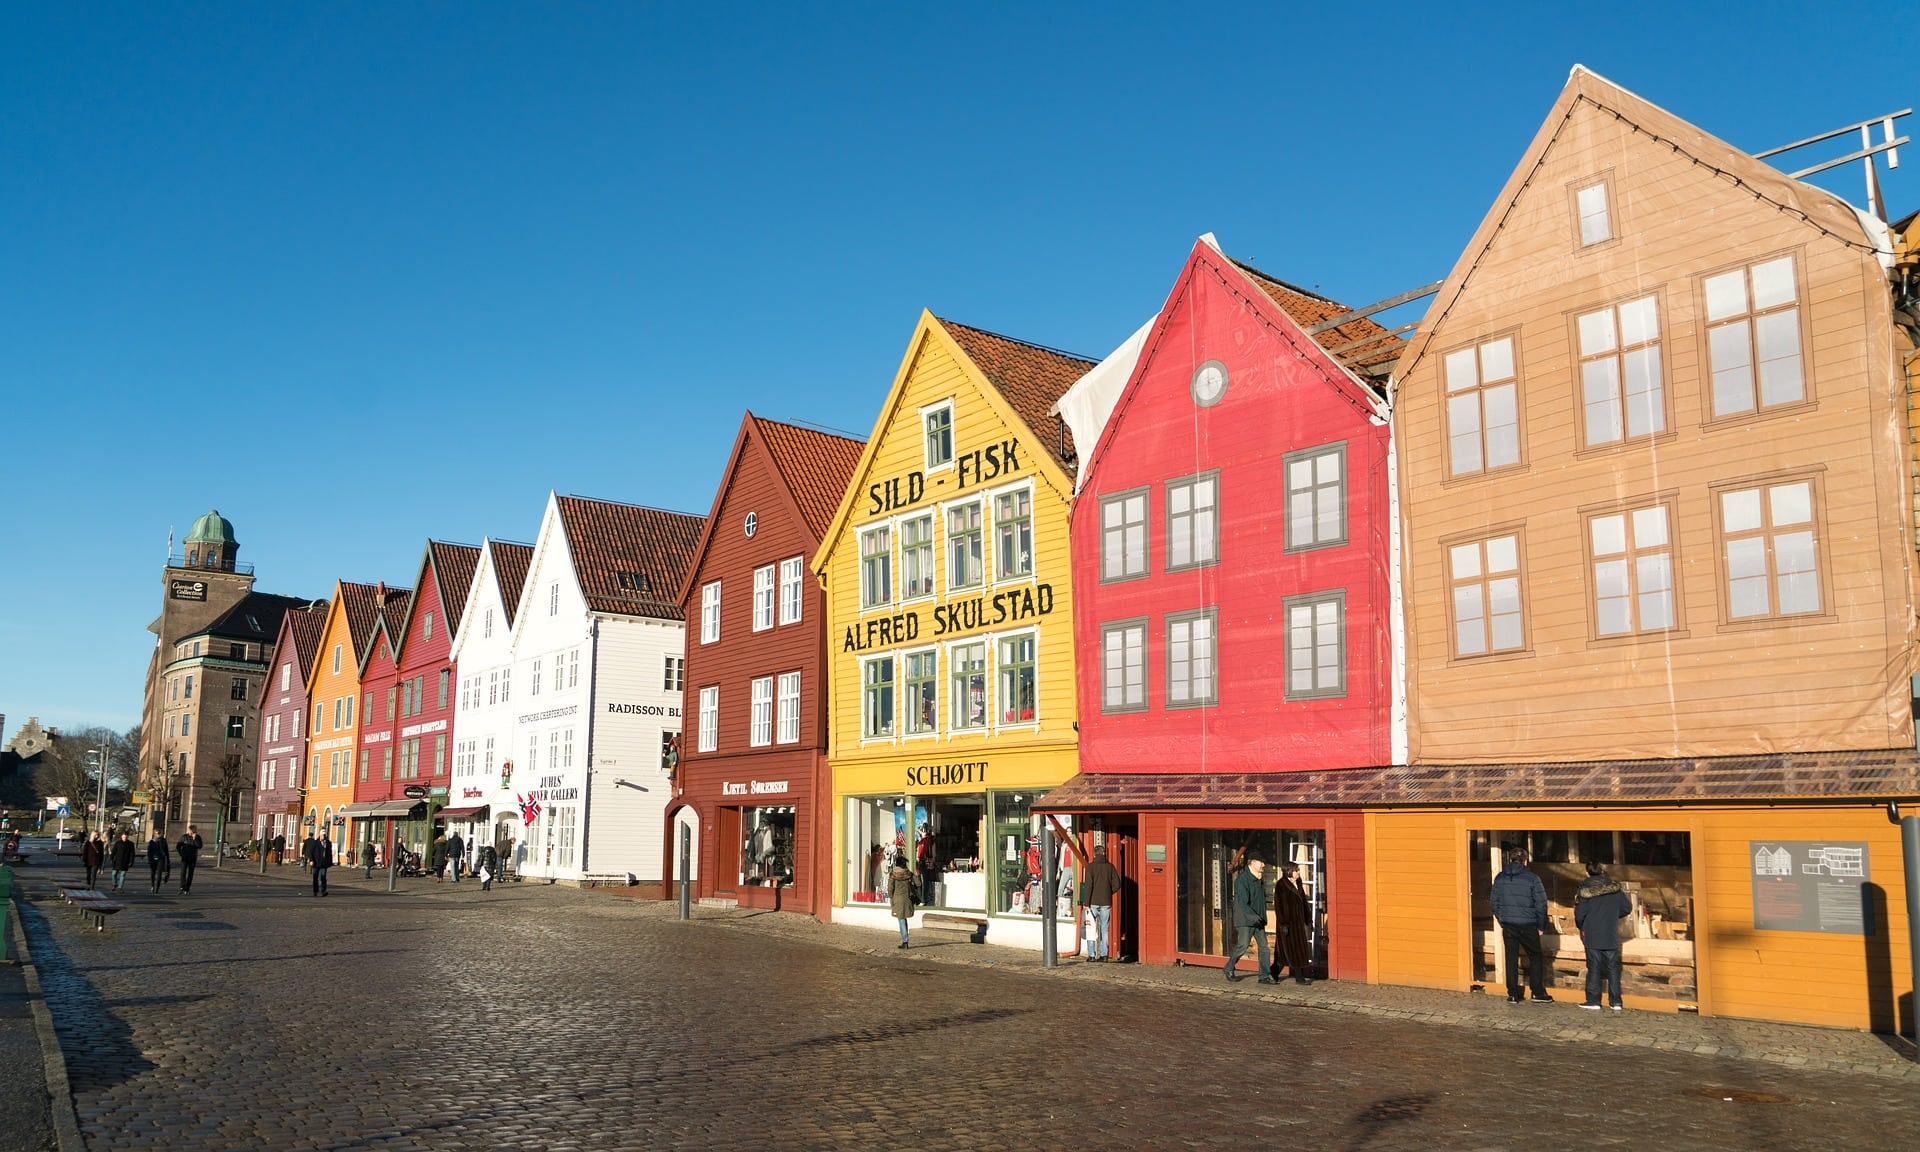 The beautiful colorful merchant houses with pointed gables in Bergen date from the Hanseatic period and are on the UNESCO World Heritage List.